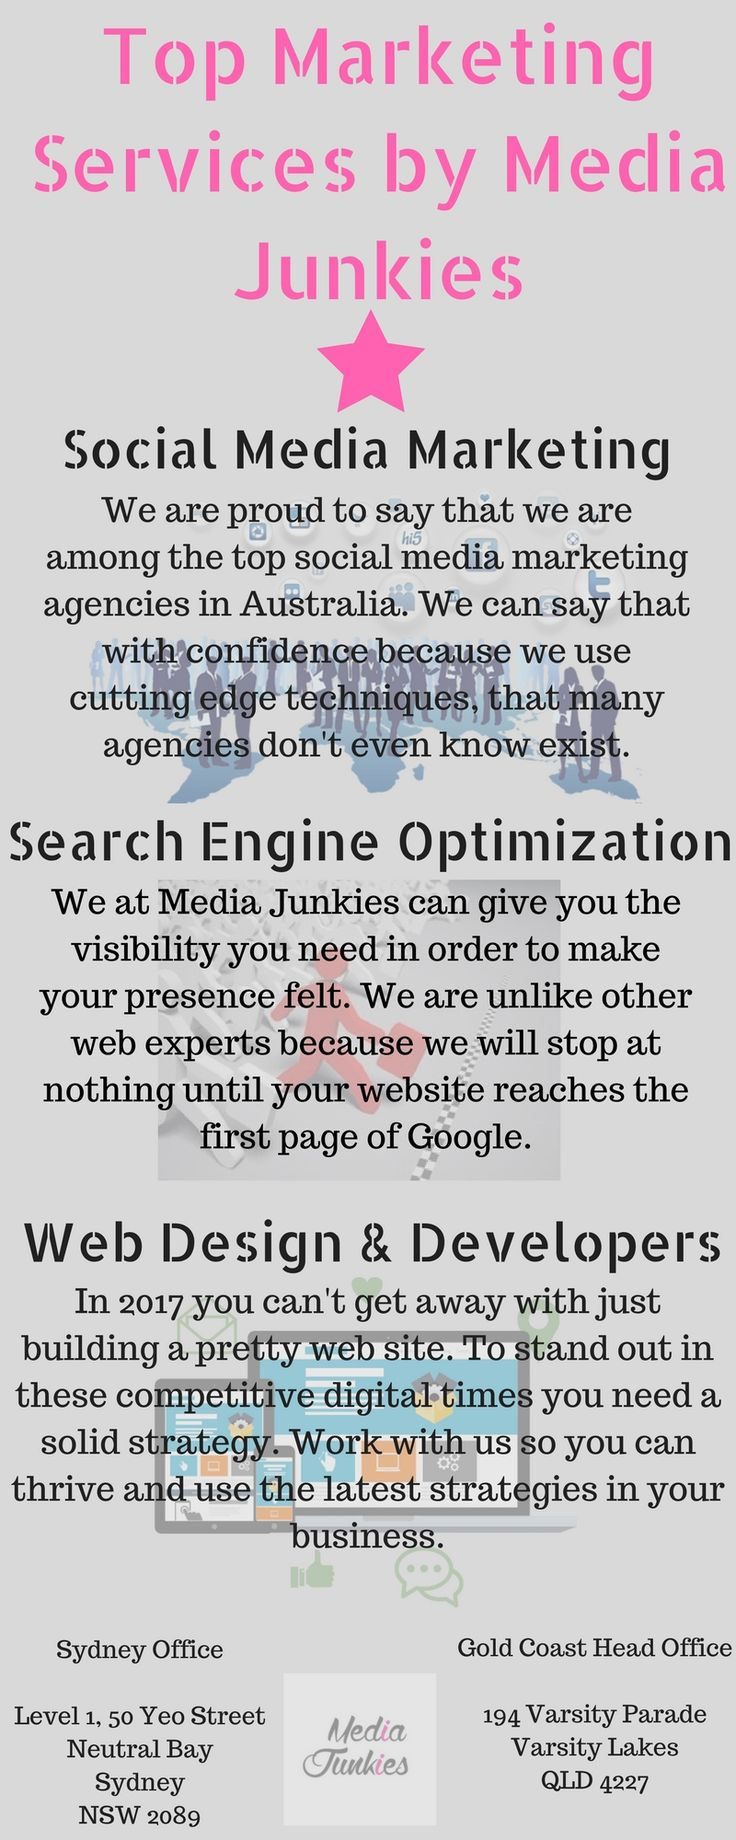 Media Junkies is a online marketing service providing agency in Australia working from years. Social media marketing, seo, Web   design & developers are our some top marketing services. If you are looking for a marketing agency to work for your business with   advance marketing techniques, go for Media Junkies. Check out all our services at: https://mediajunkies.com.au/services/